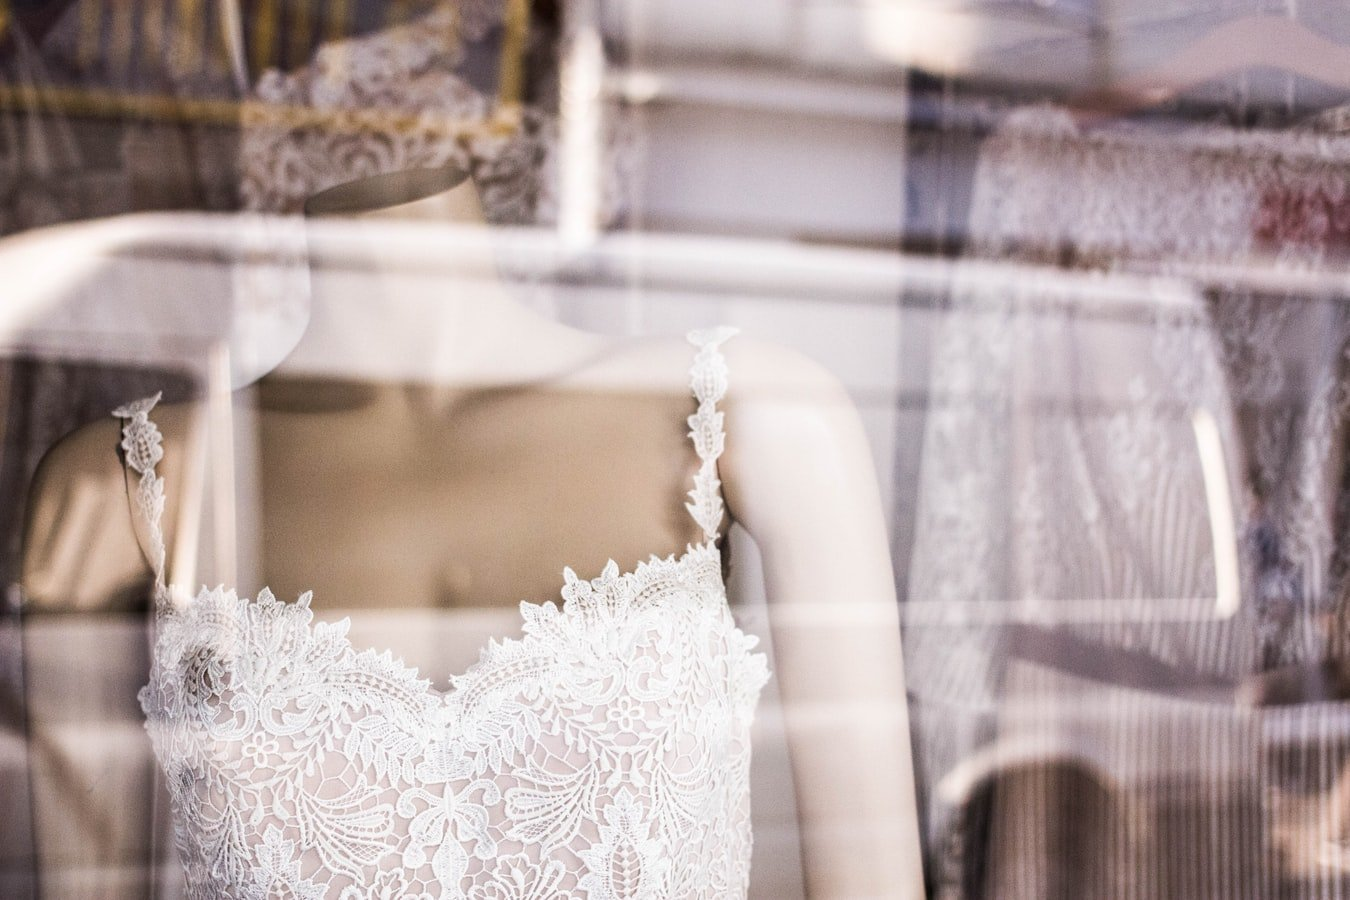 The wedding dress shop | Source: Unsplash